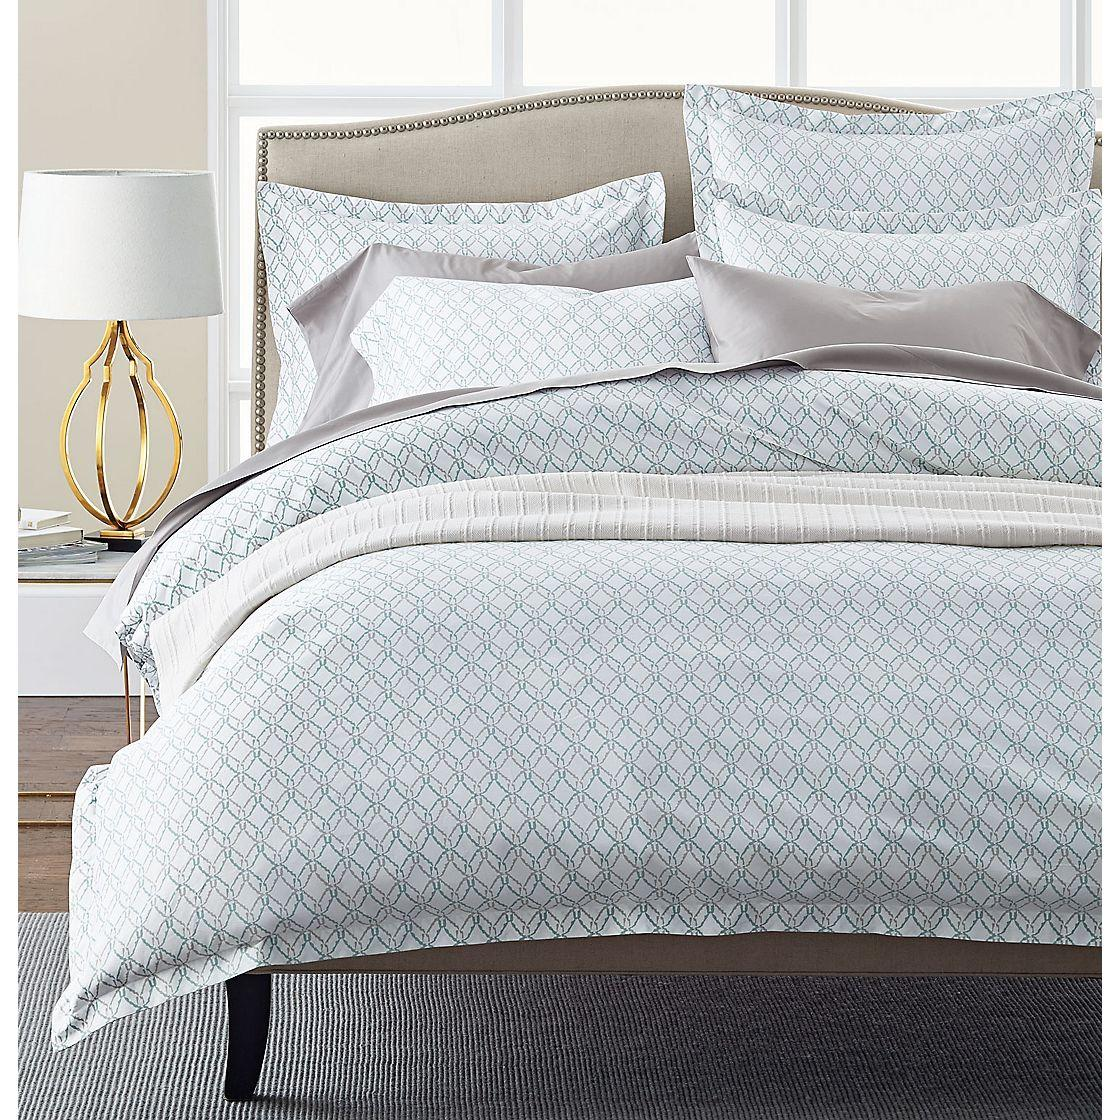 Legends Trellis Turquoise Sateen Sheets Bedding Company Store